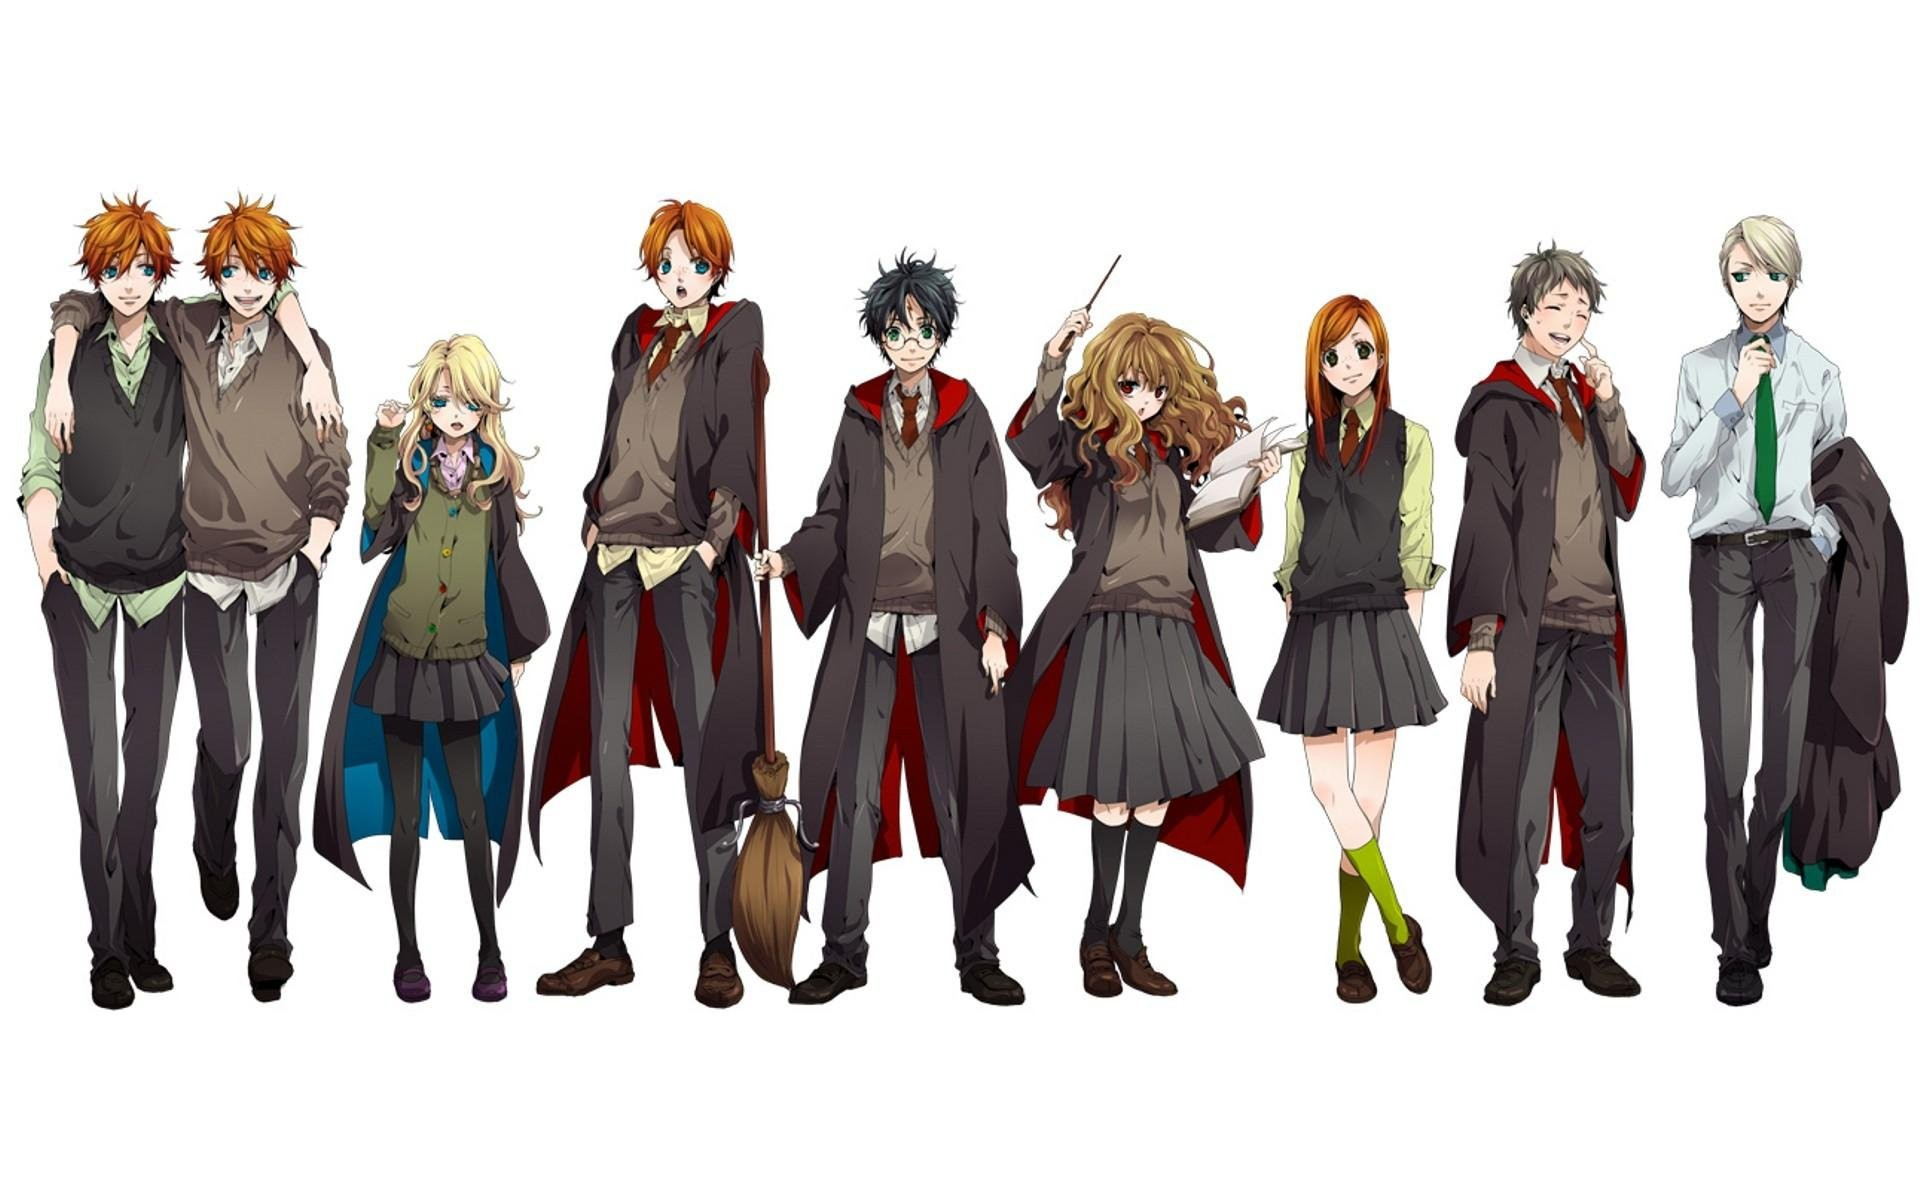 … Perfect Harry Potter Animated Wallpaper High Definition Wallpapers  1080p Free Download Harry Potter Animated Wallpaper for